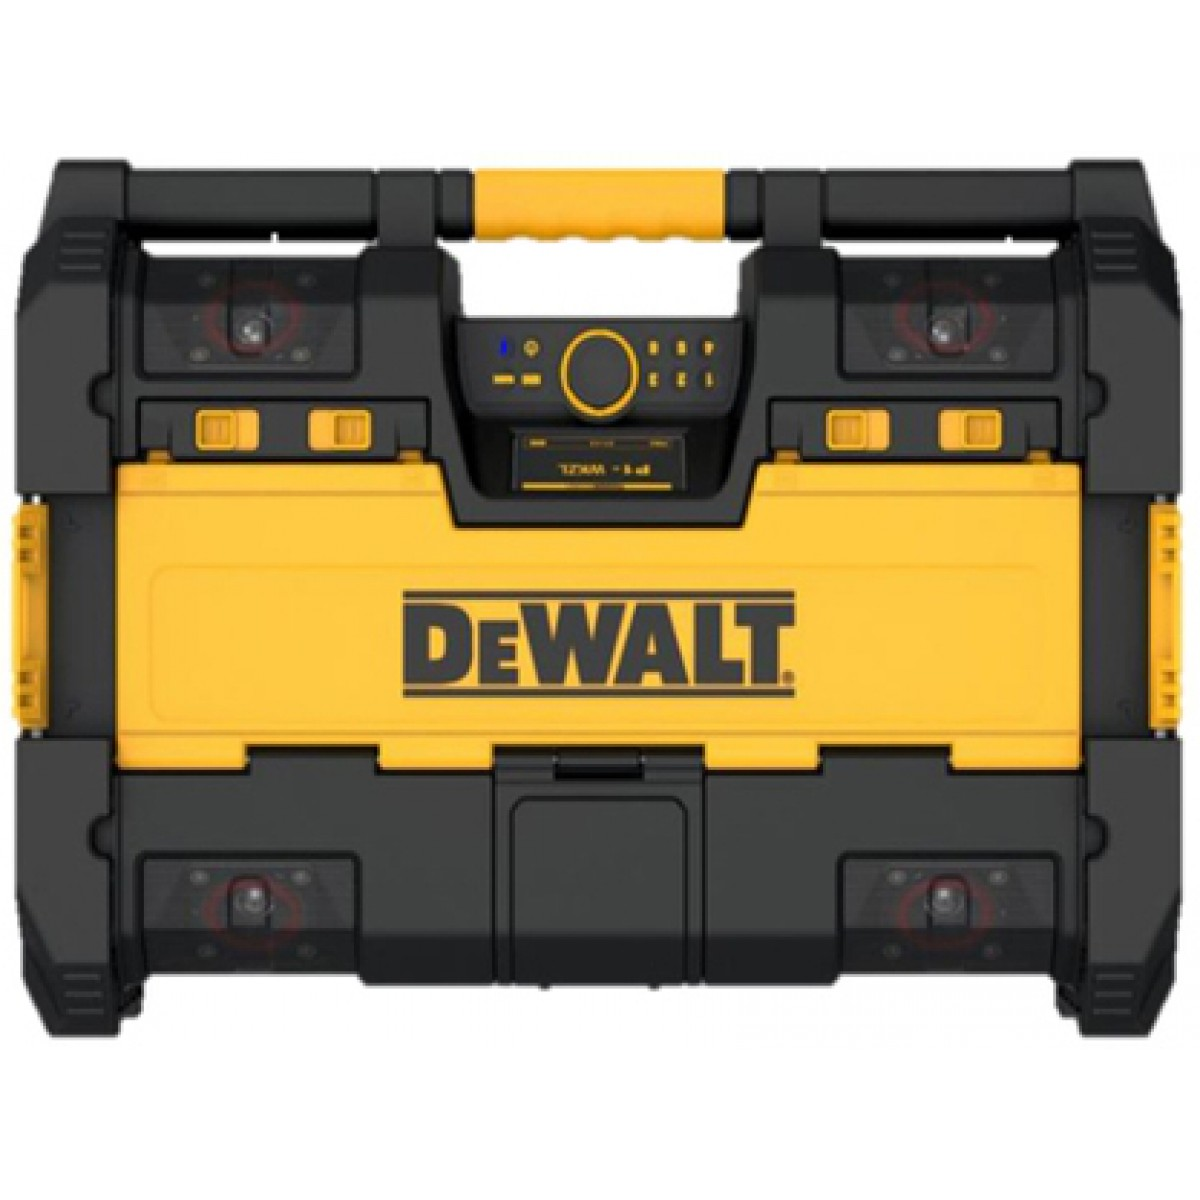 Dewalt ToughSystem Radio and Charger DWST08810 - Tool Box Buzz